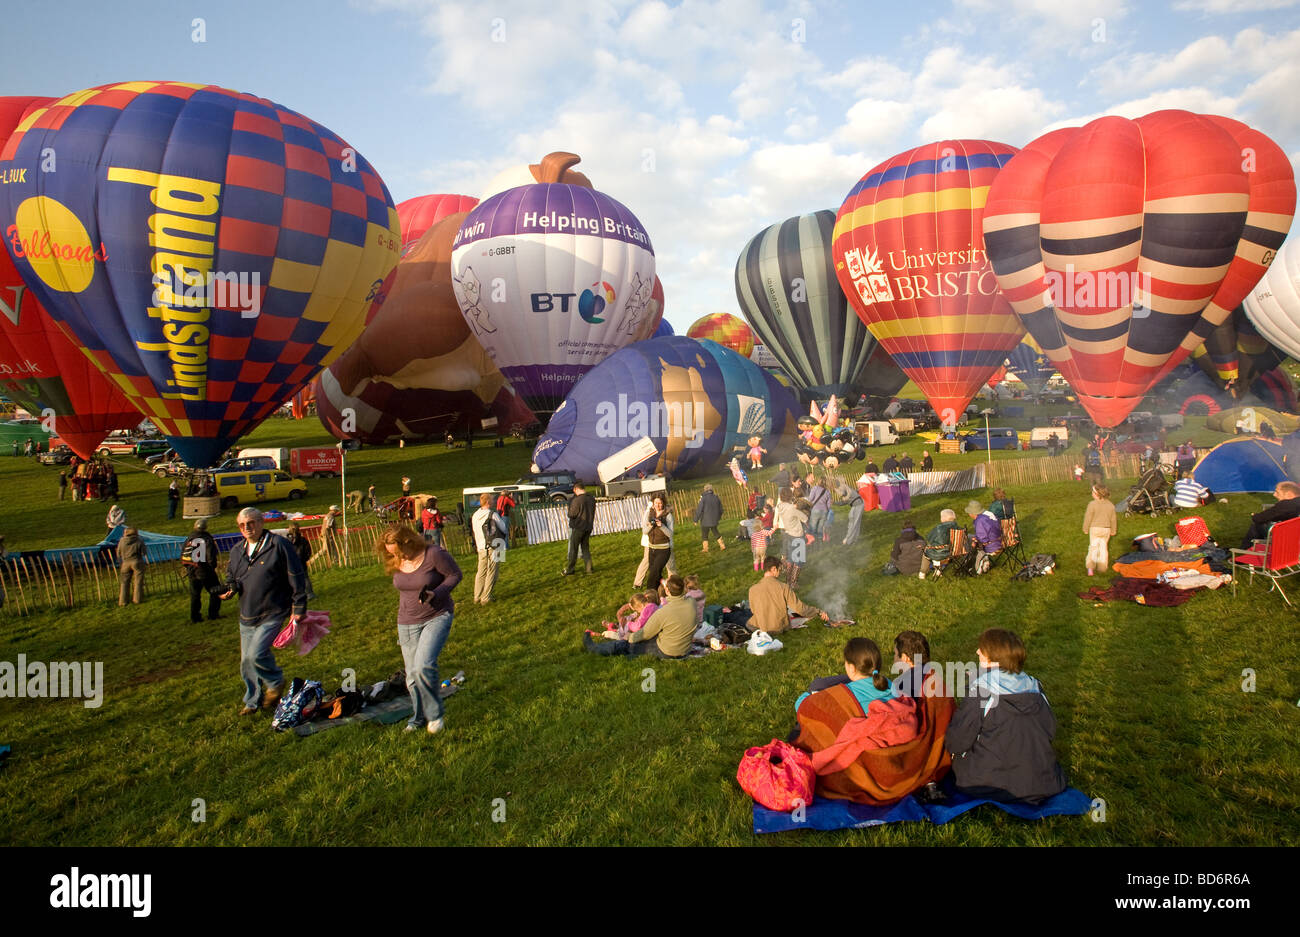 Bristol Hot-air Balloon Fiesta 2009, preparing for early morning take-off of balloons with spectators Stock Photo